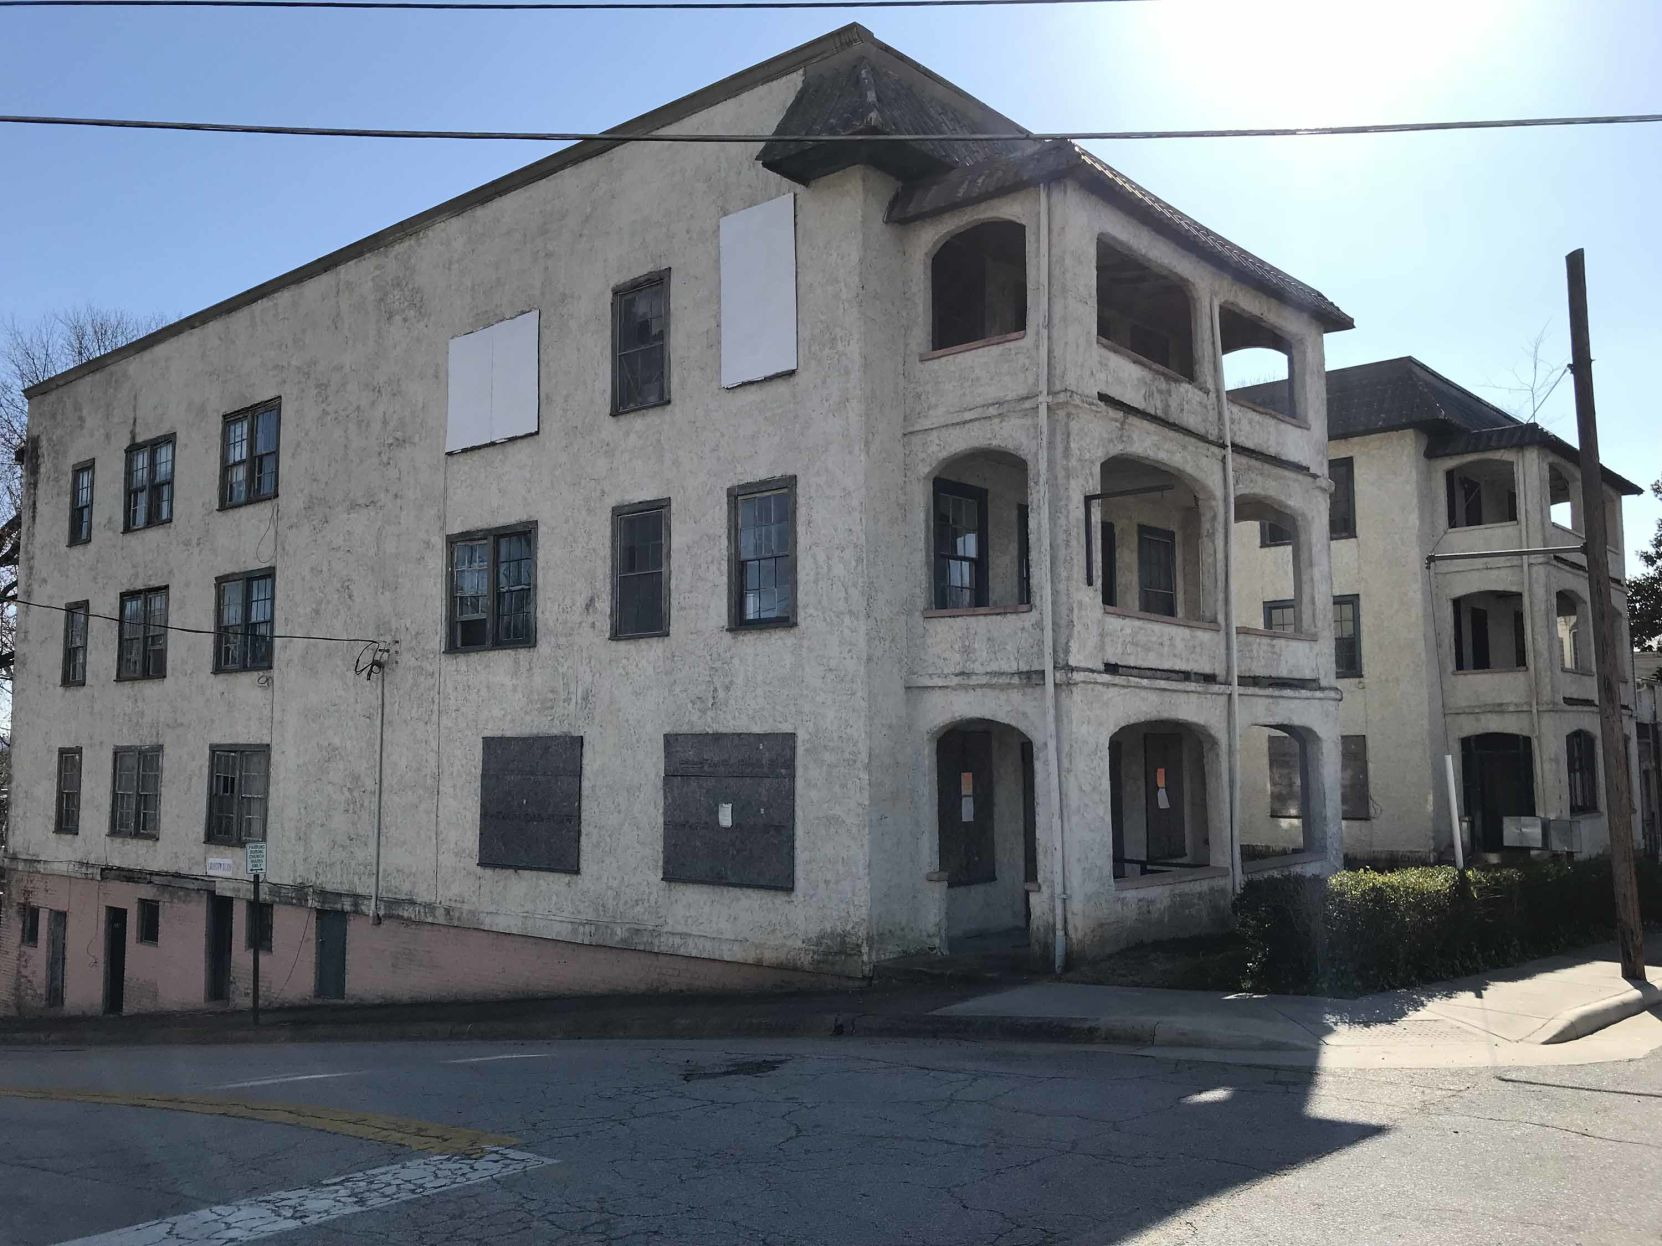 Danville Weighs Buying Blighted Apartment Building